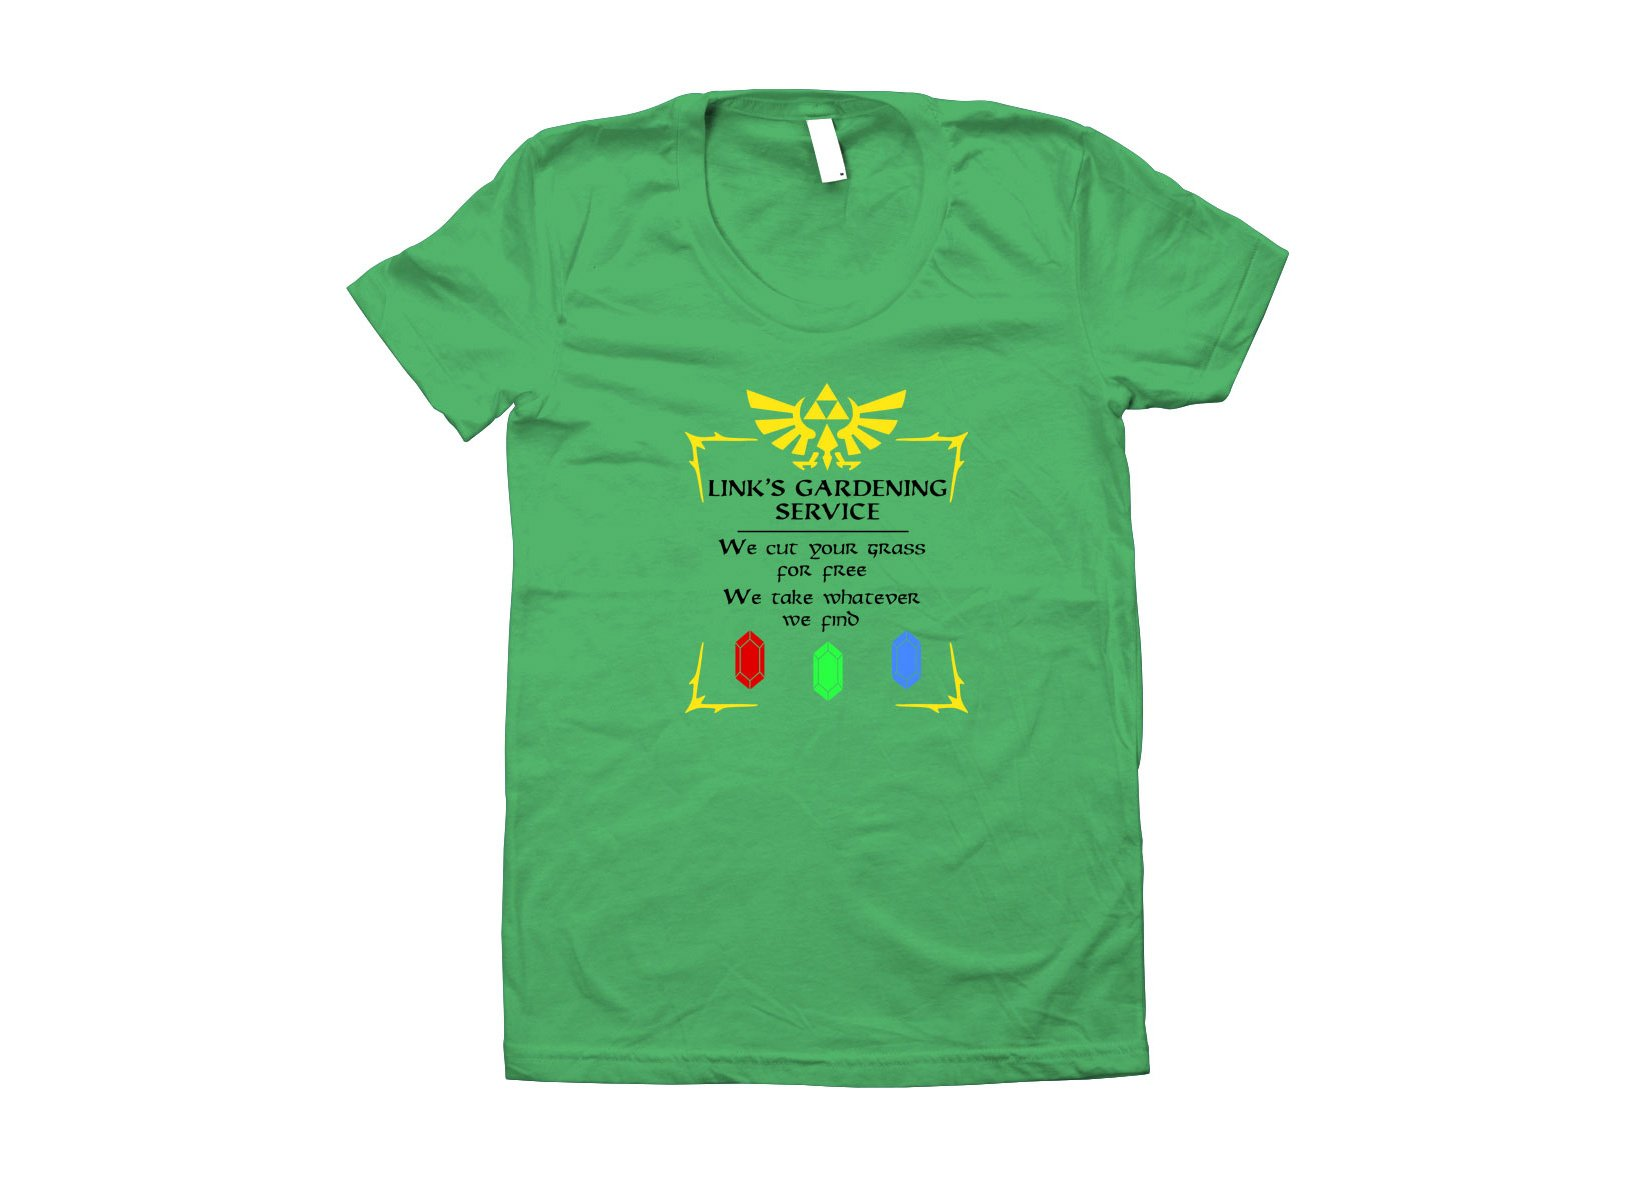 Link's Gardening Service on Juniors T-Shirt